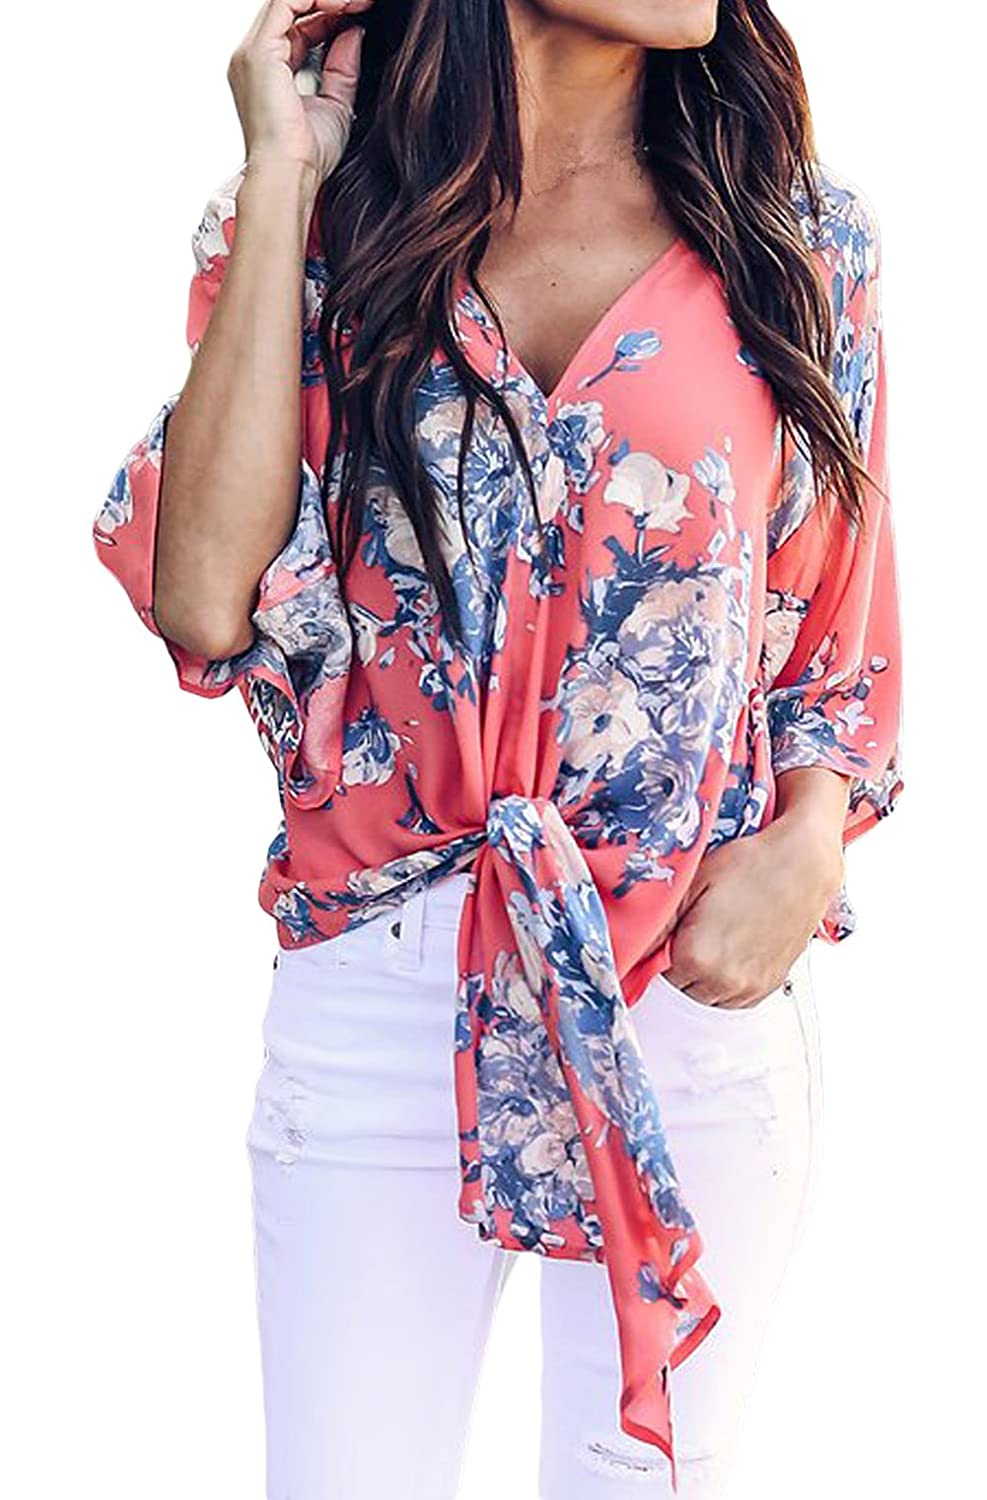 43b6a72a024361 Summer Floral Tie Front Chiffon Blouse For Women Sexy V Neck Short Sleeve  Shirt Casual Loose Fit Tops STYLE DESIGN  Women floral tie front blouse  features ...